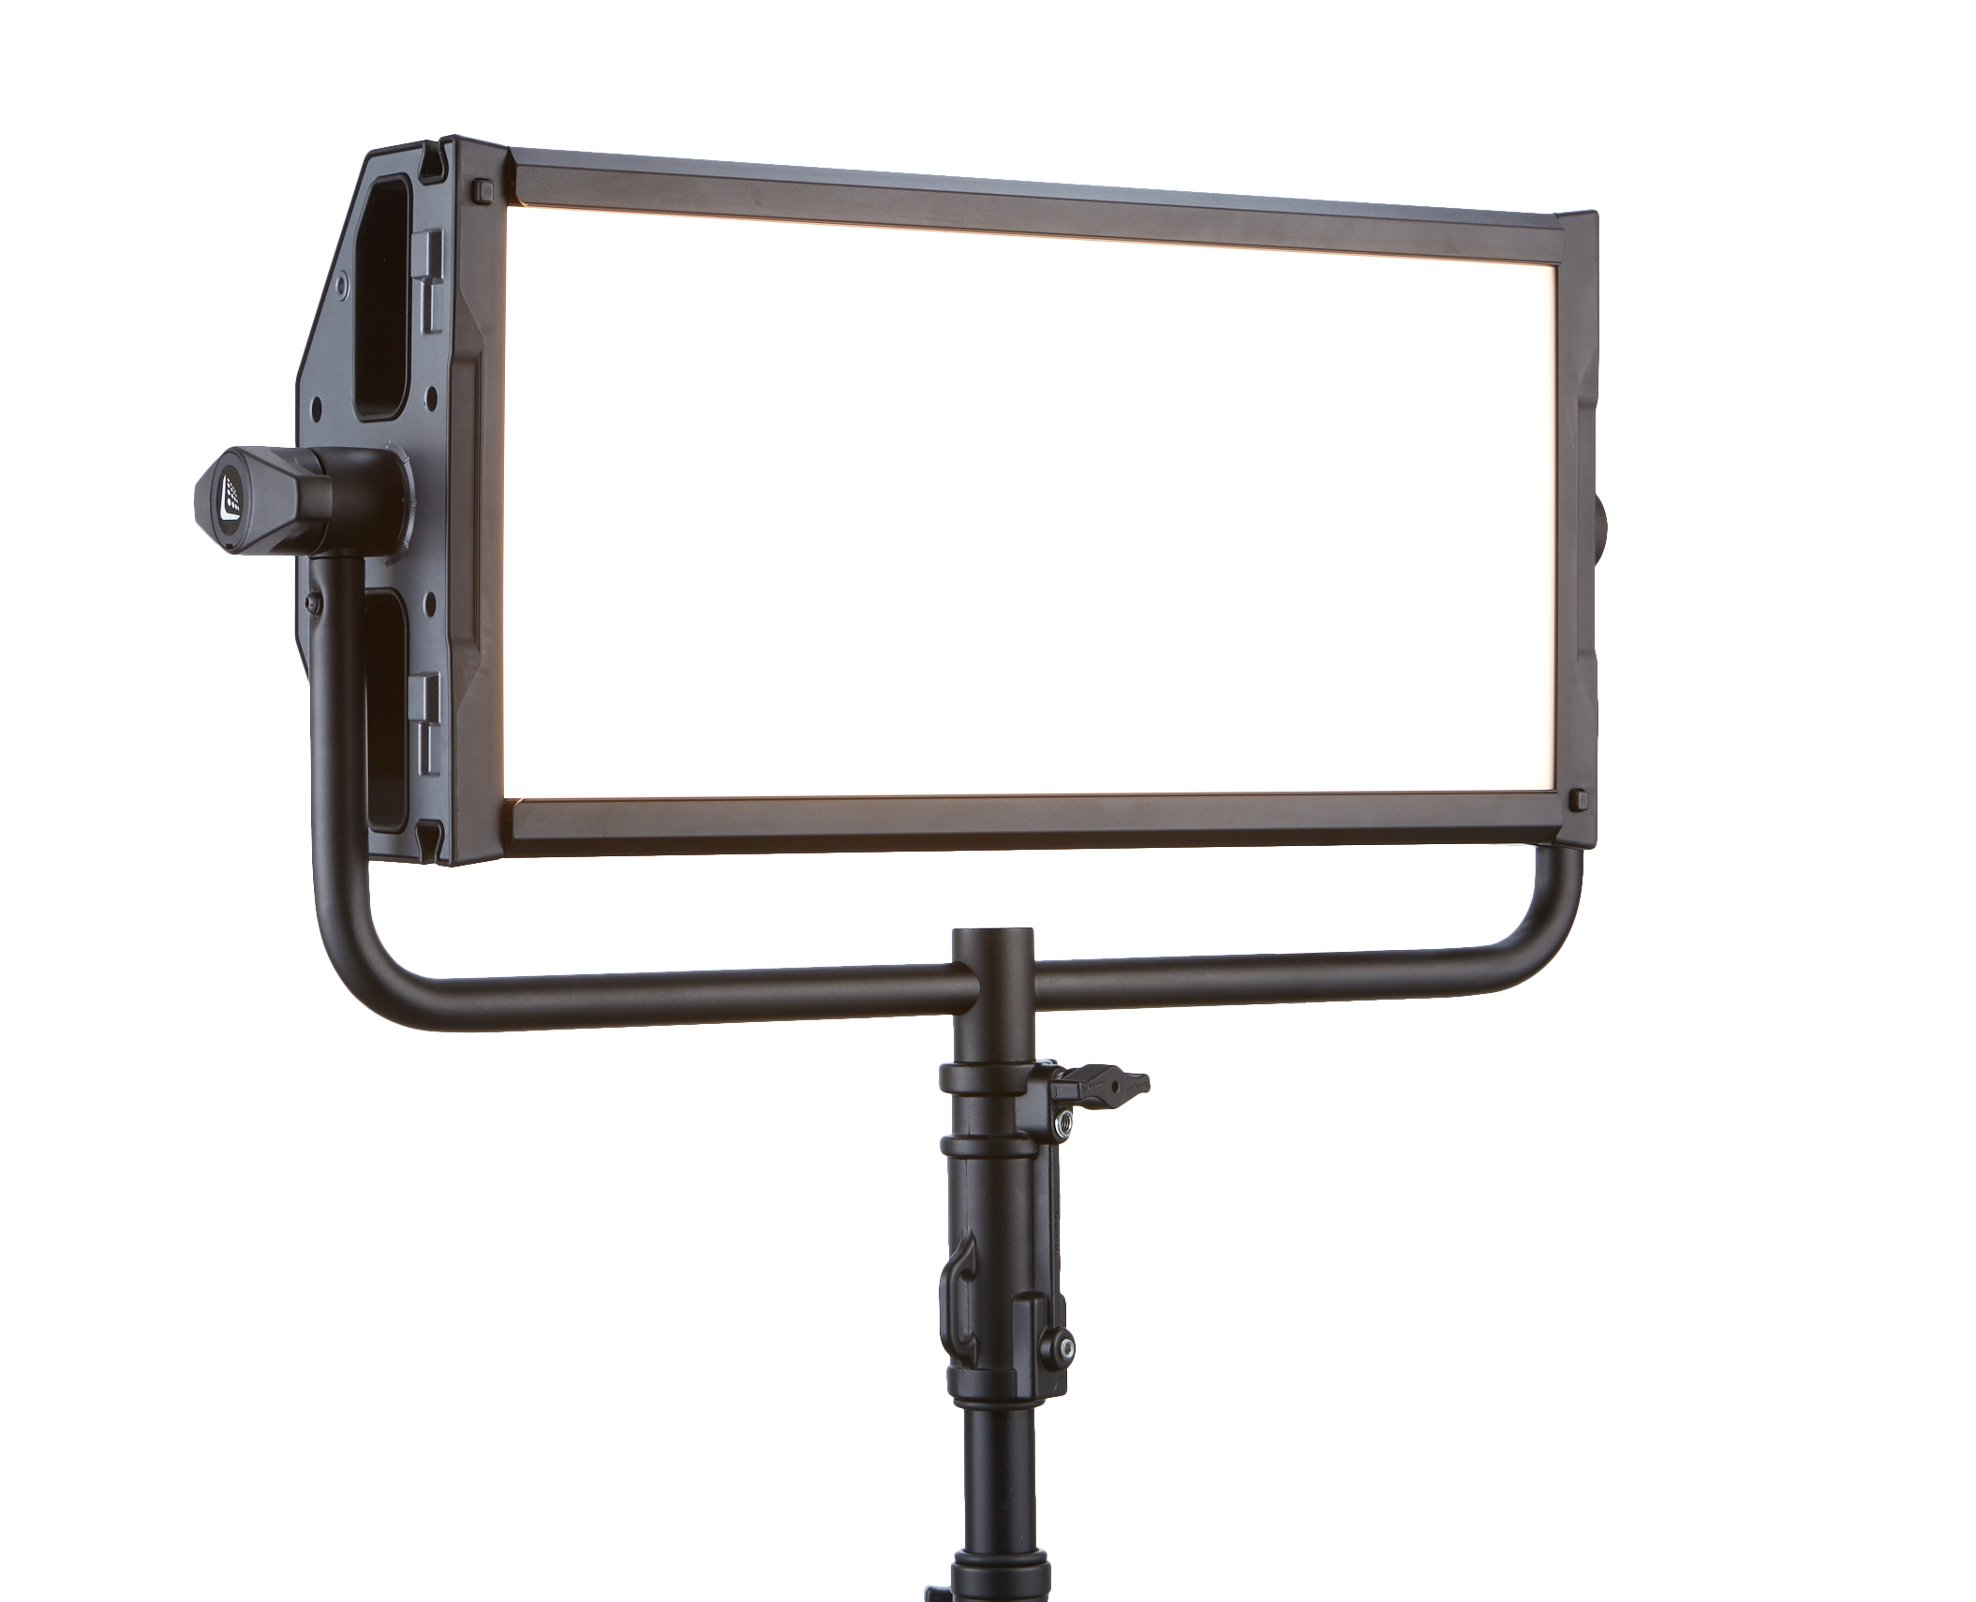 325W 2x1 LED Panel with Bare Ends and Pole Operated Yoke